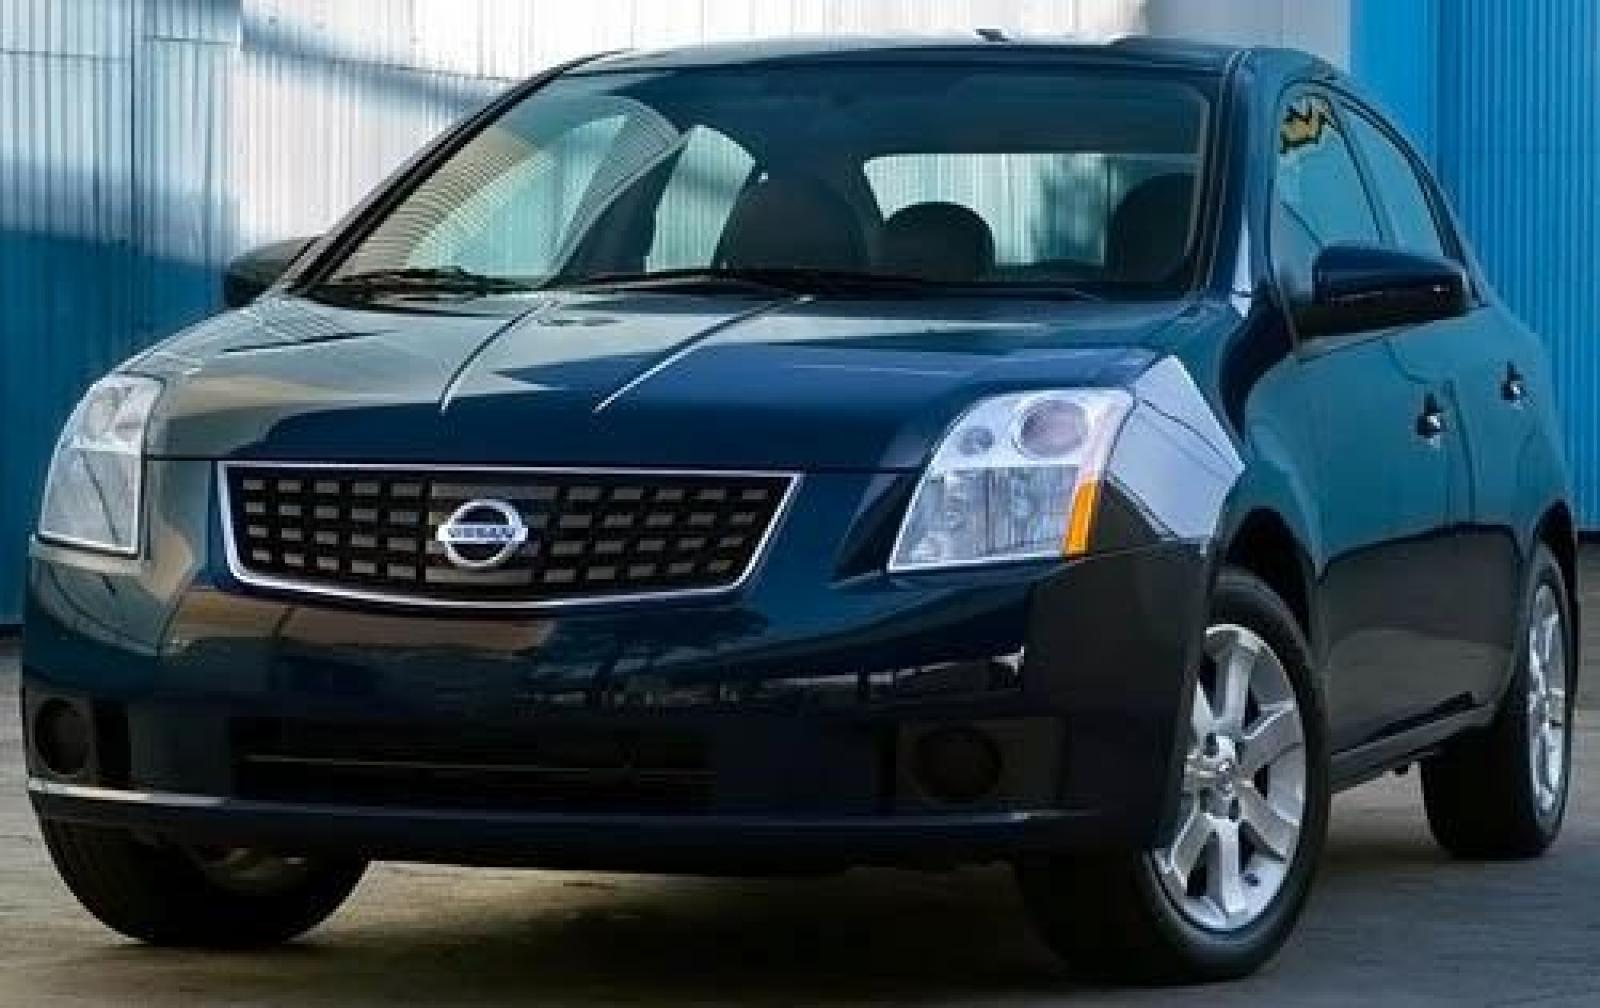 2009 Nissan Sentra - Information and photos - ZombieDrive